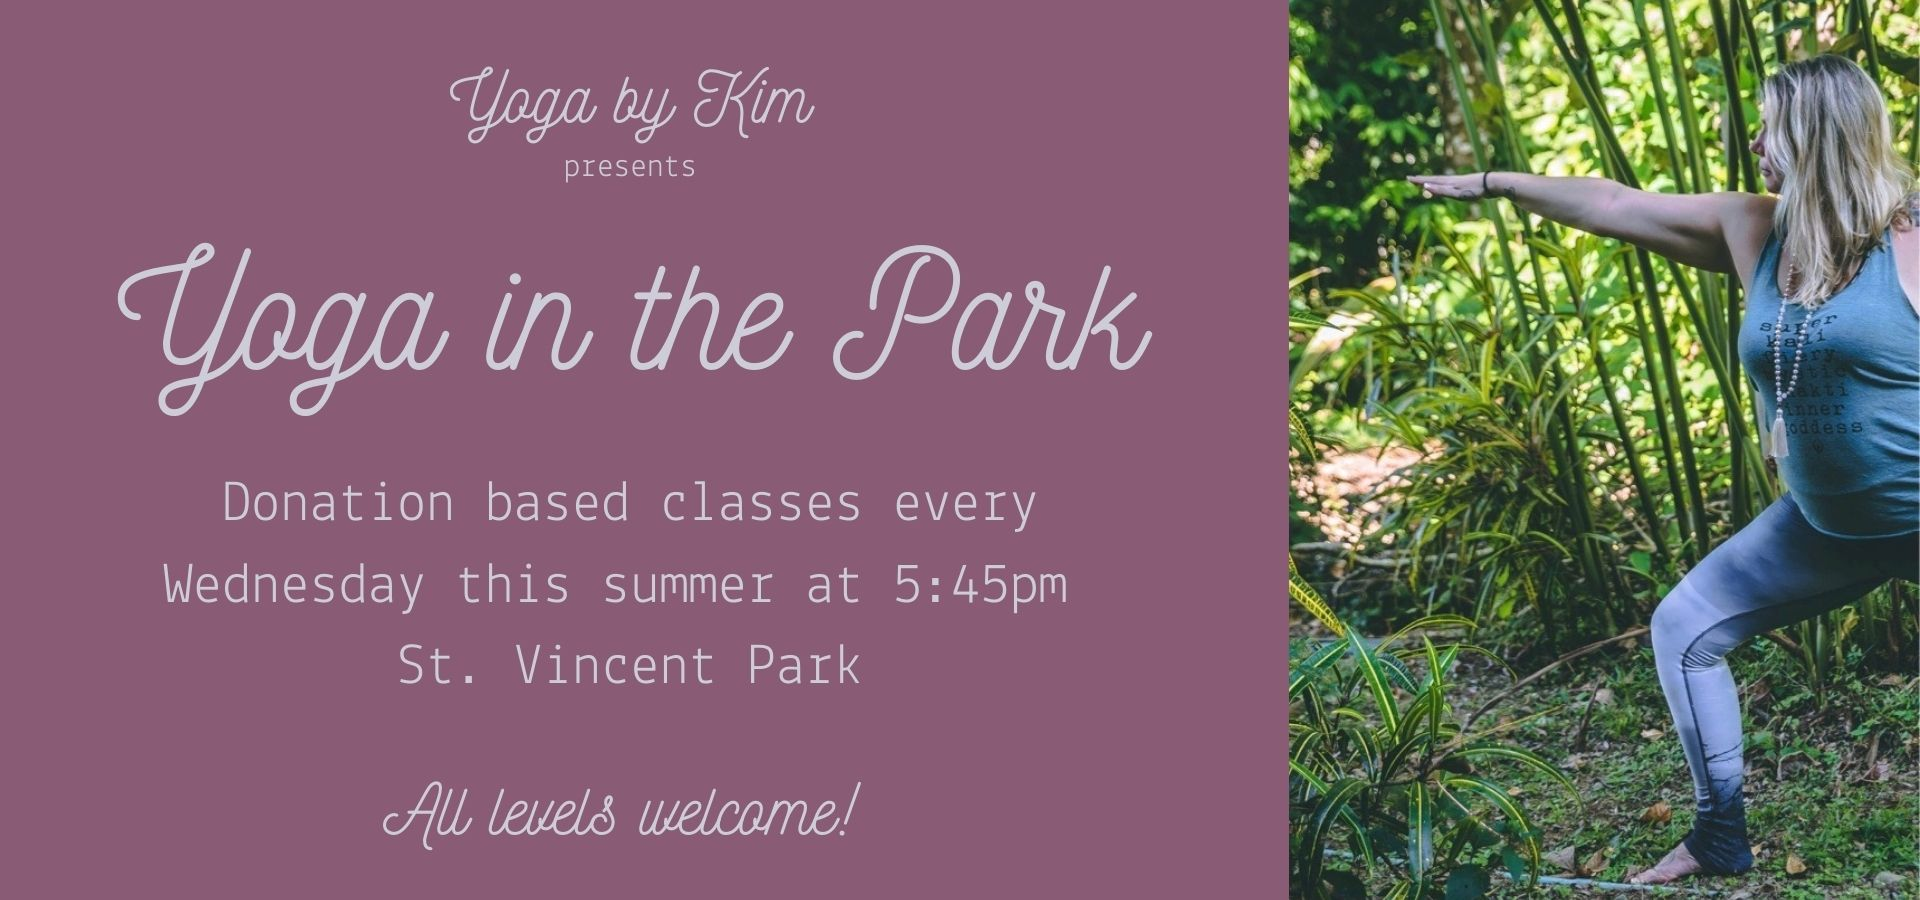 Yoga by Kim presents Yoga in the Park every Wednesday this summer in Barrie, Ontario